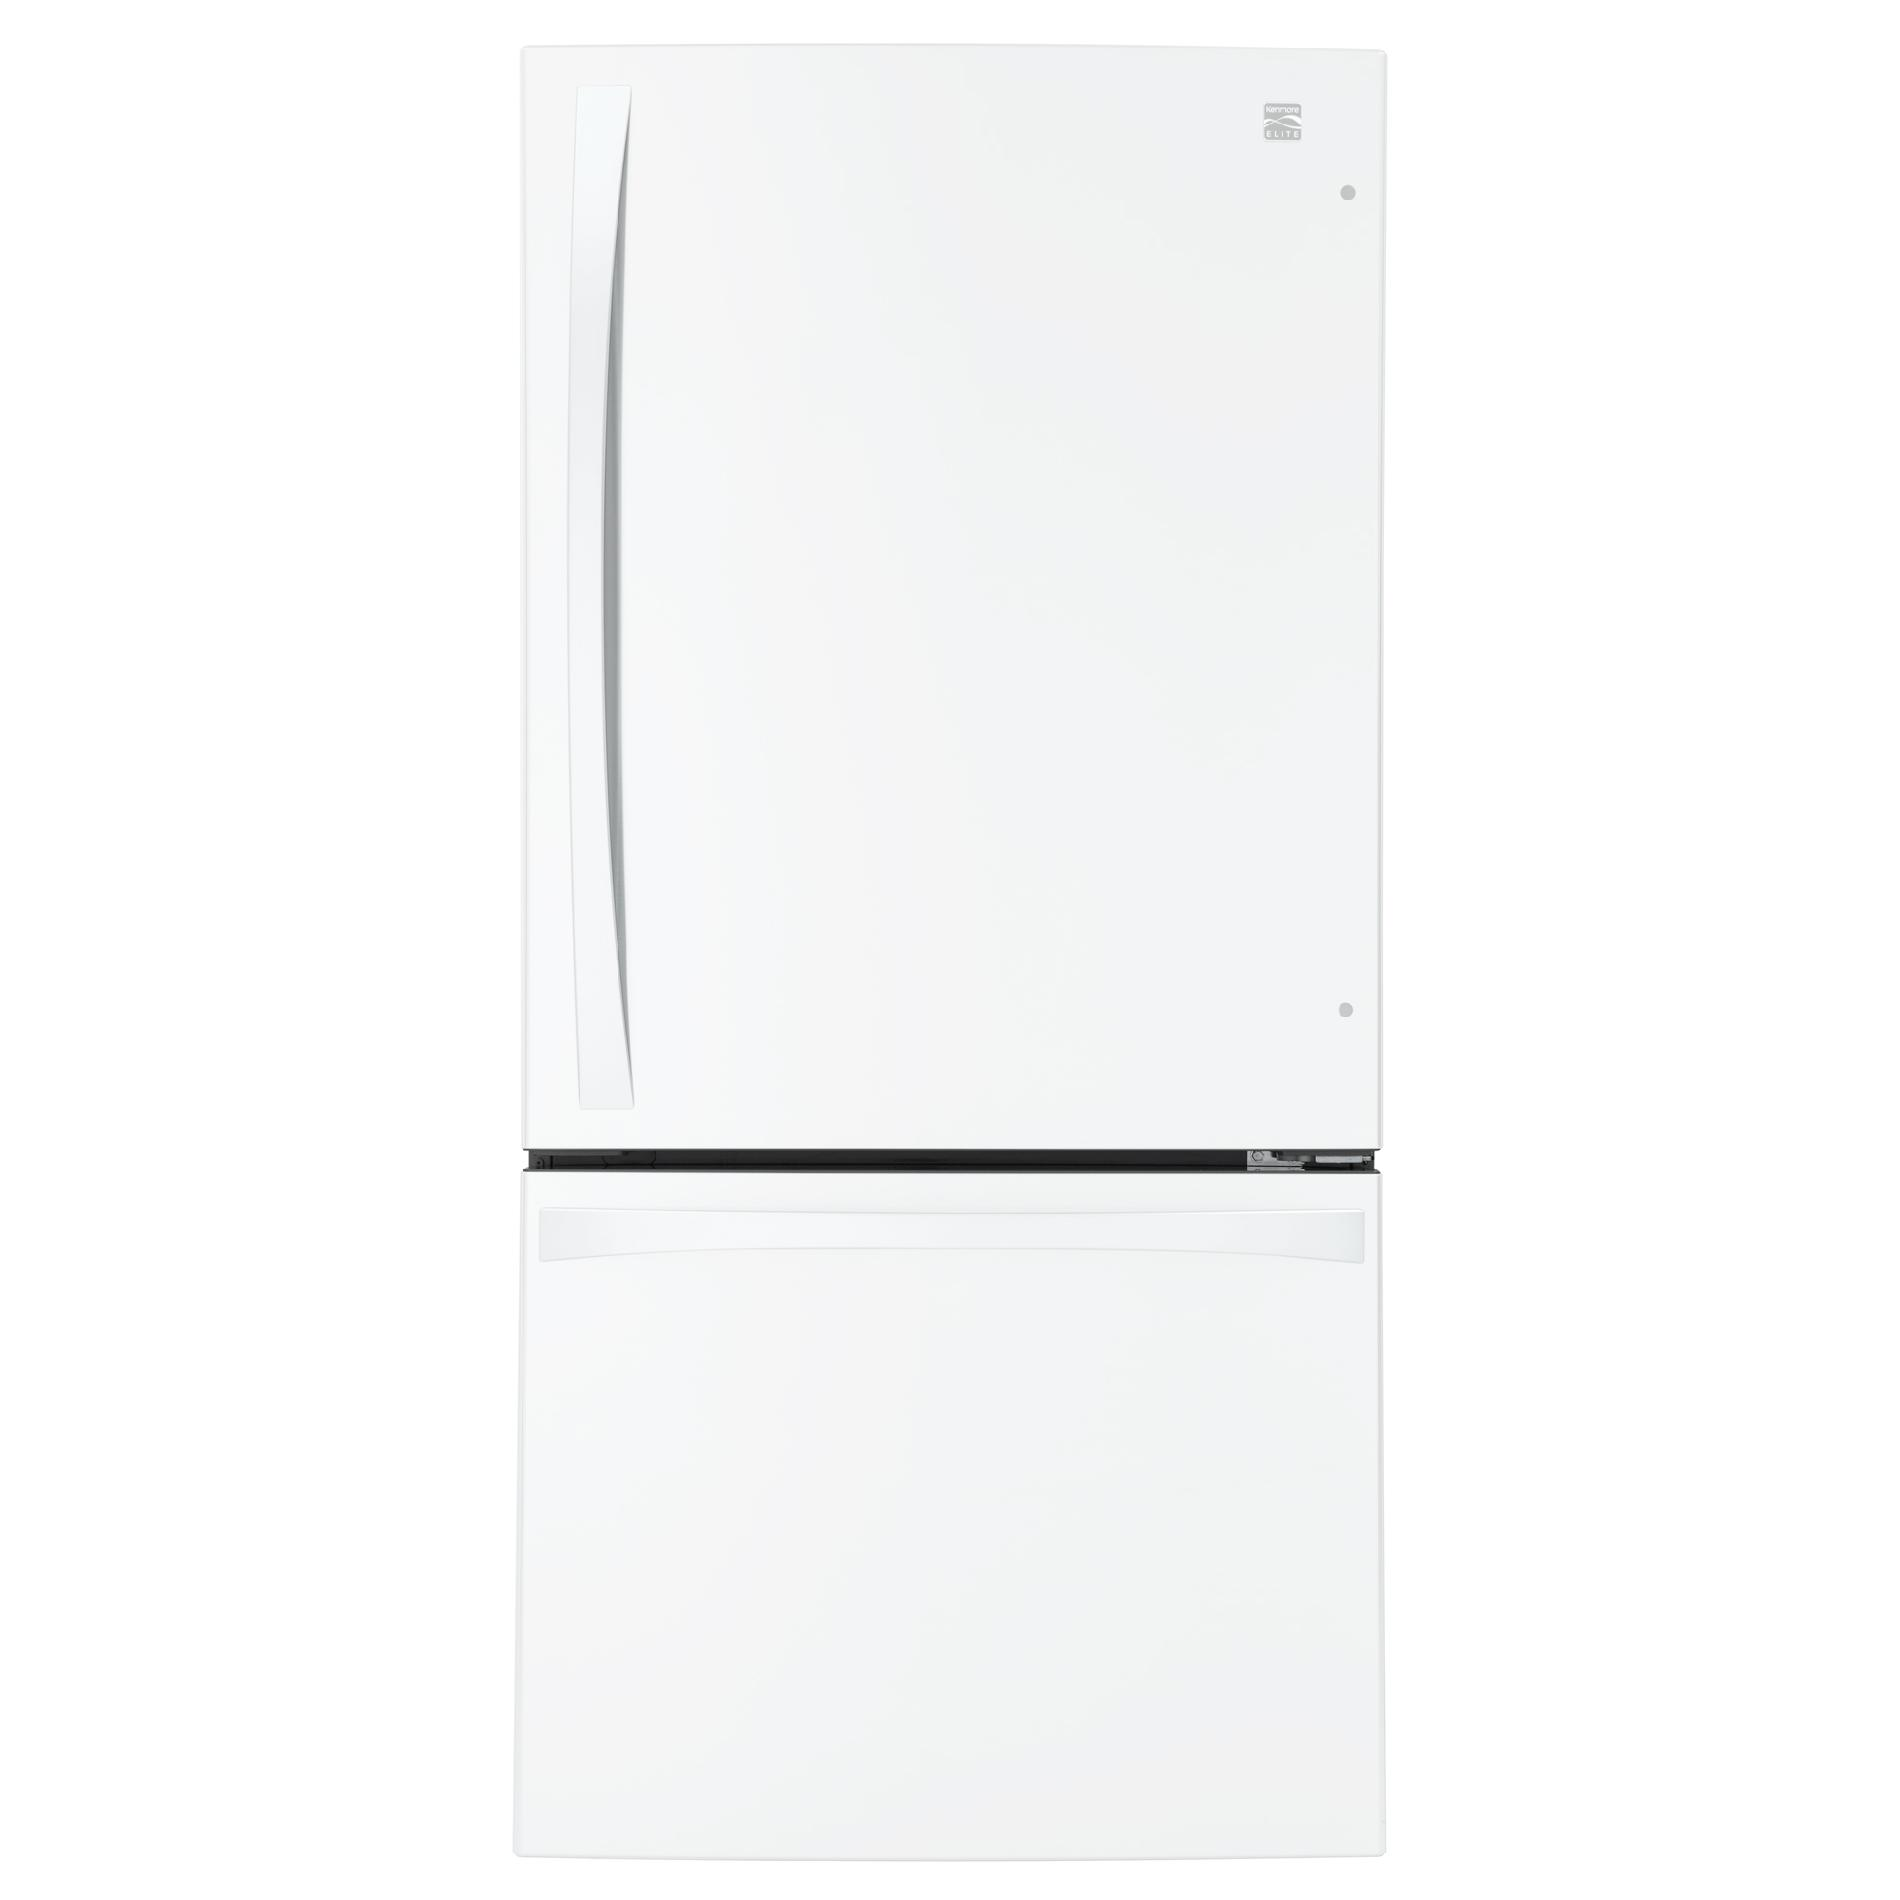 79042-24-1-cu-ft-33-Bottom-Freezer-Refrigerator-White